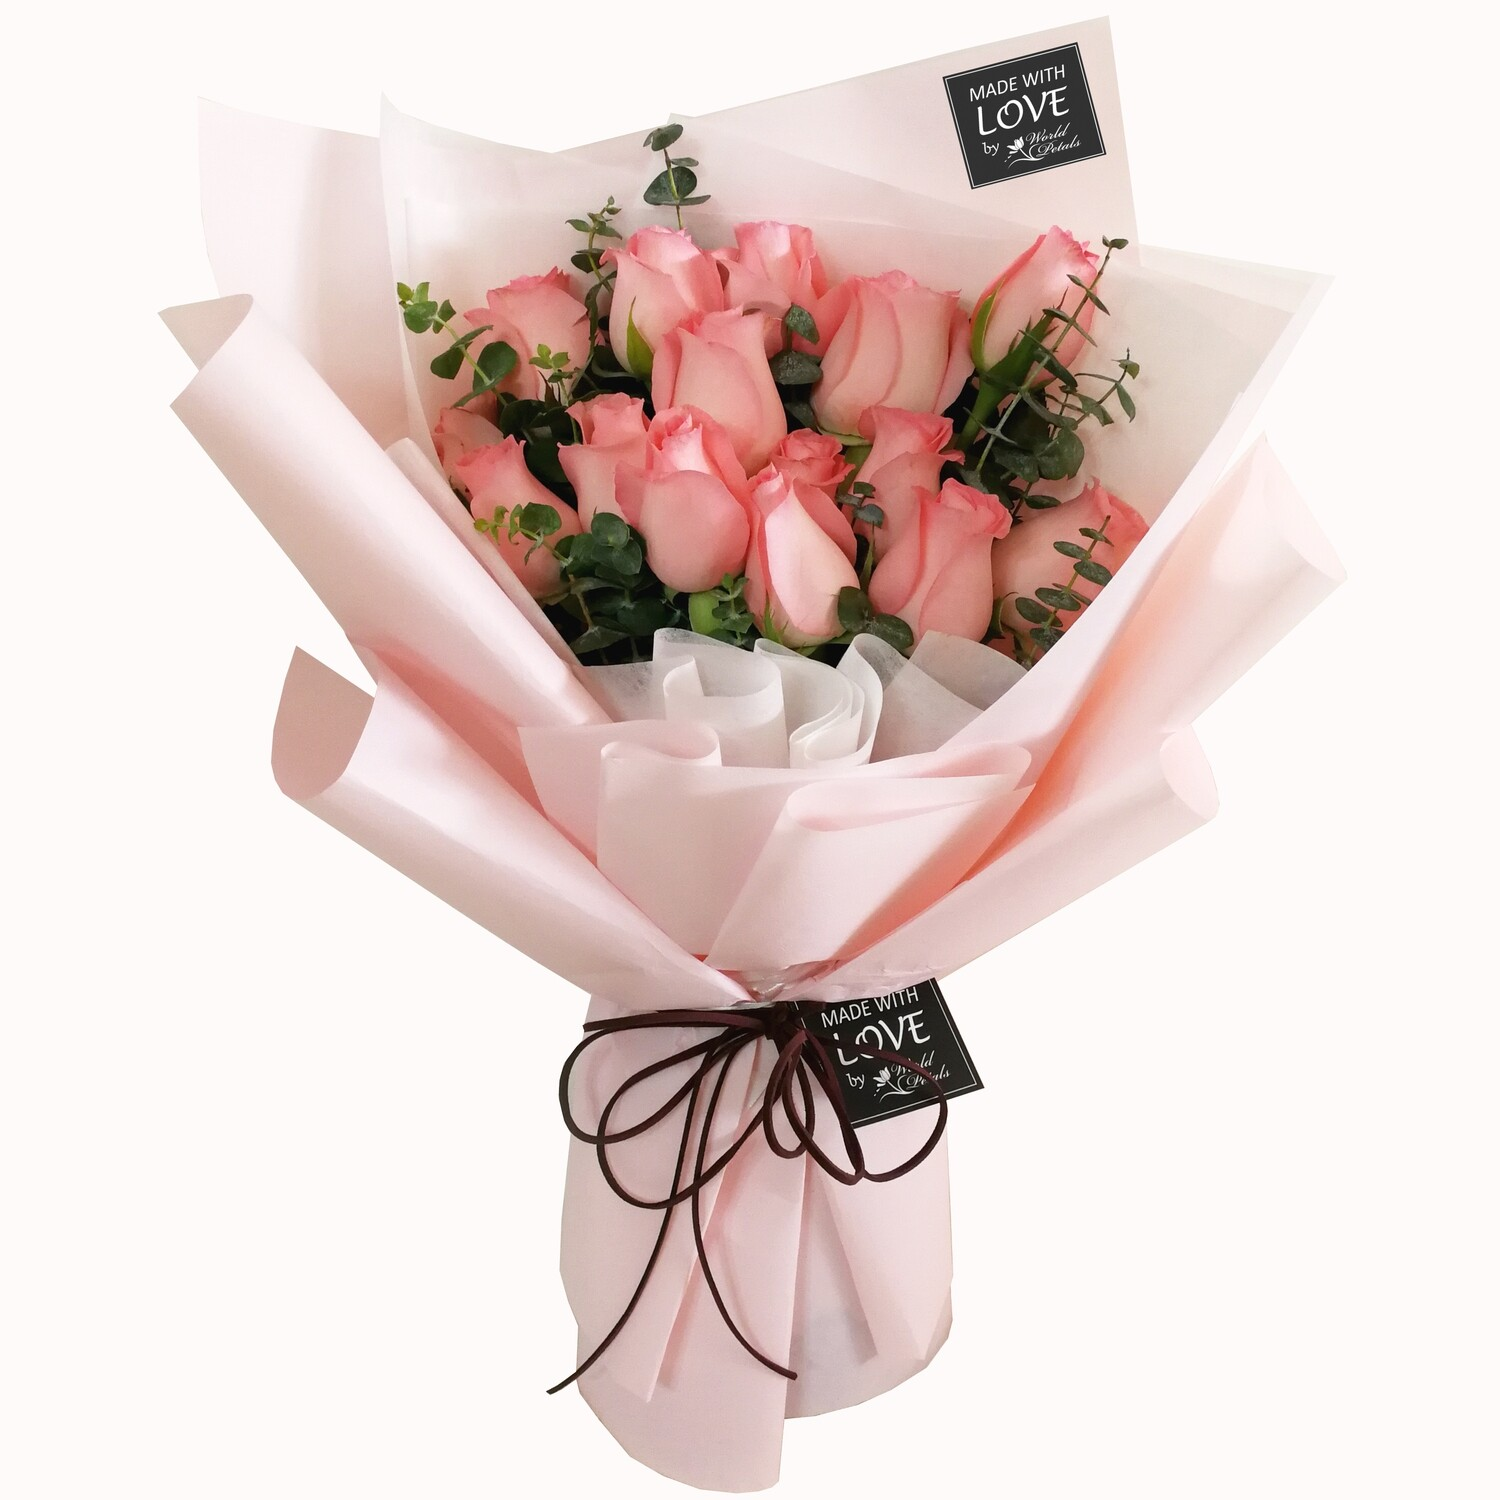 Scent (By: World Petals Florist from KL)